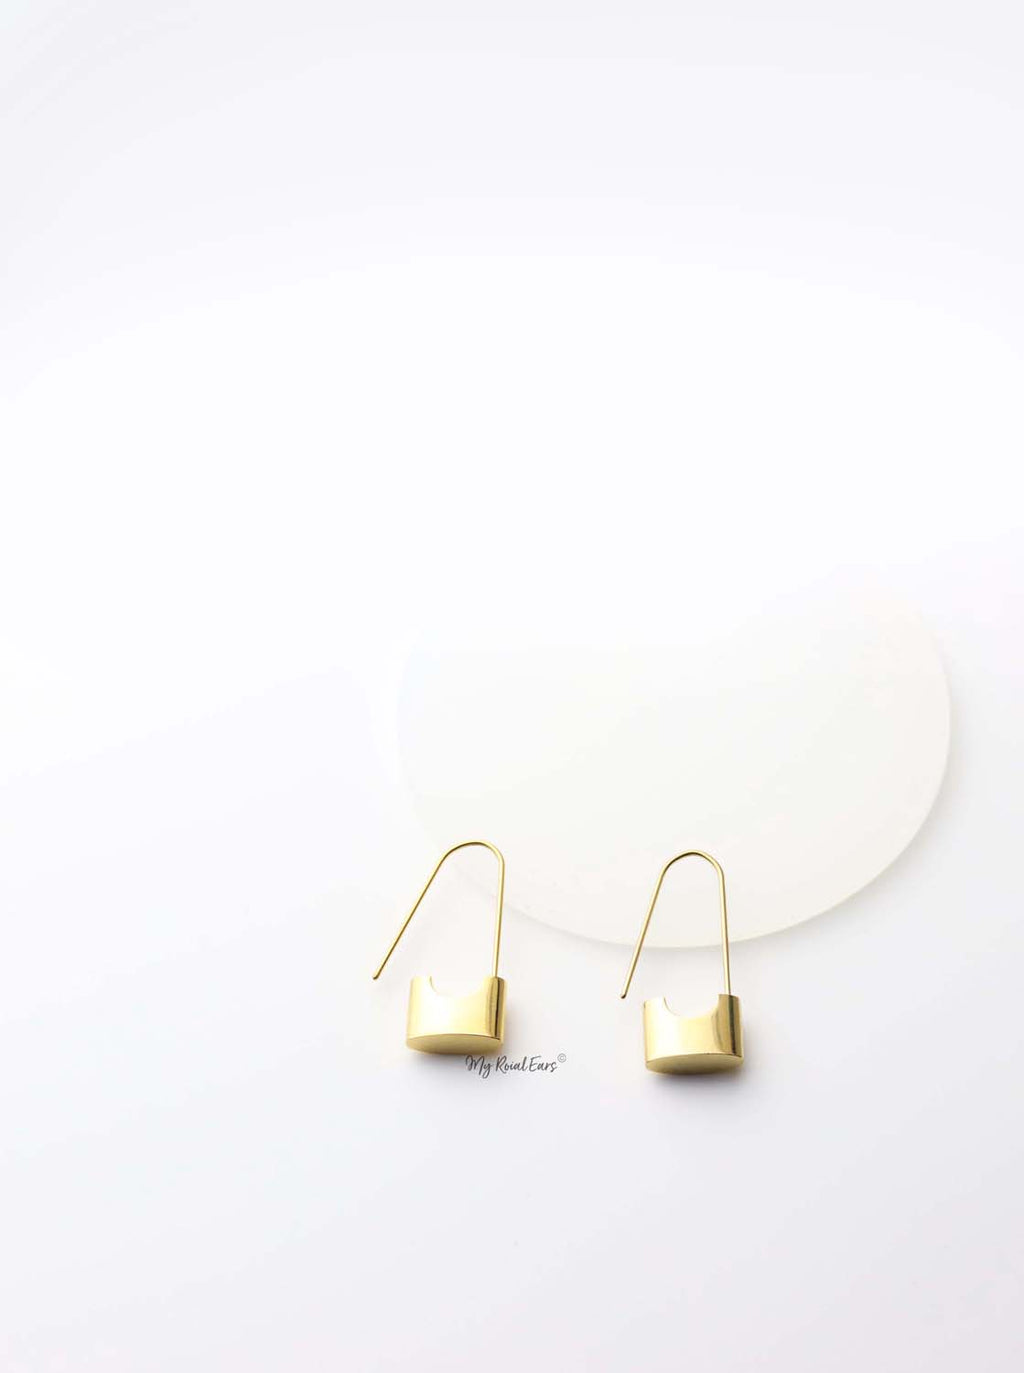 Lachesis- gold plated small lock drop earrings - My Roial Ears LTD